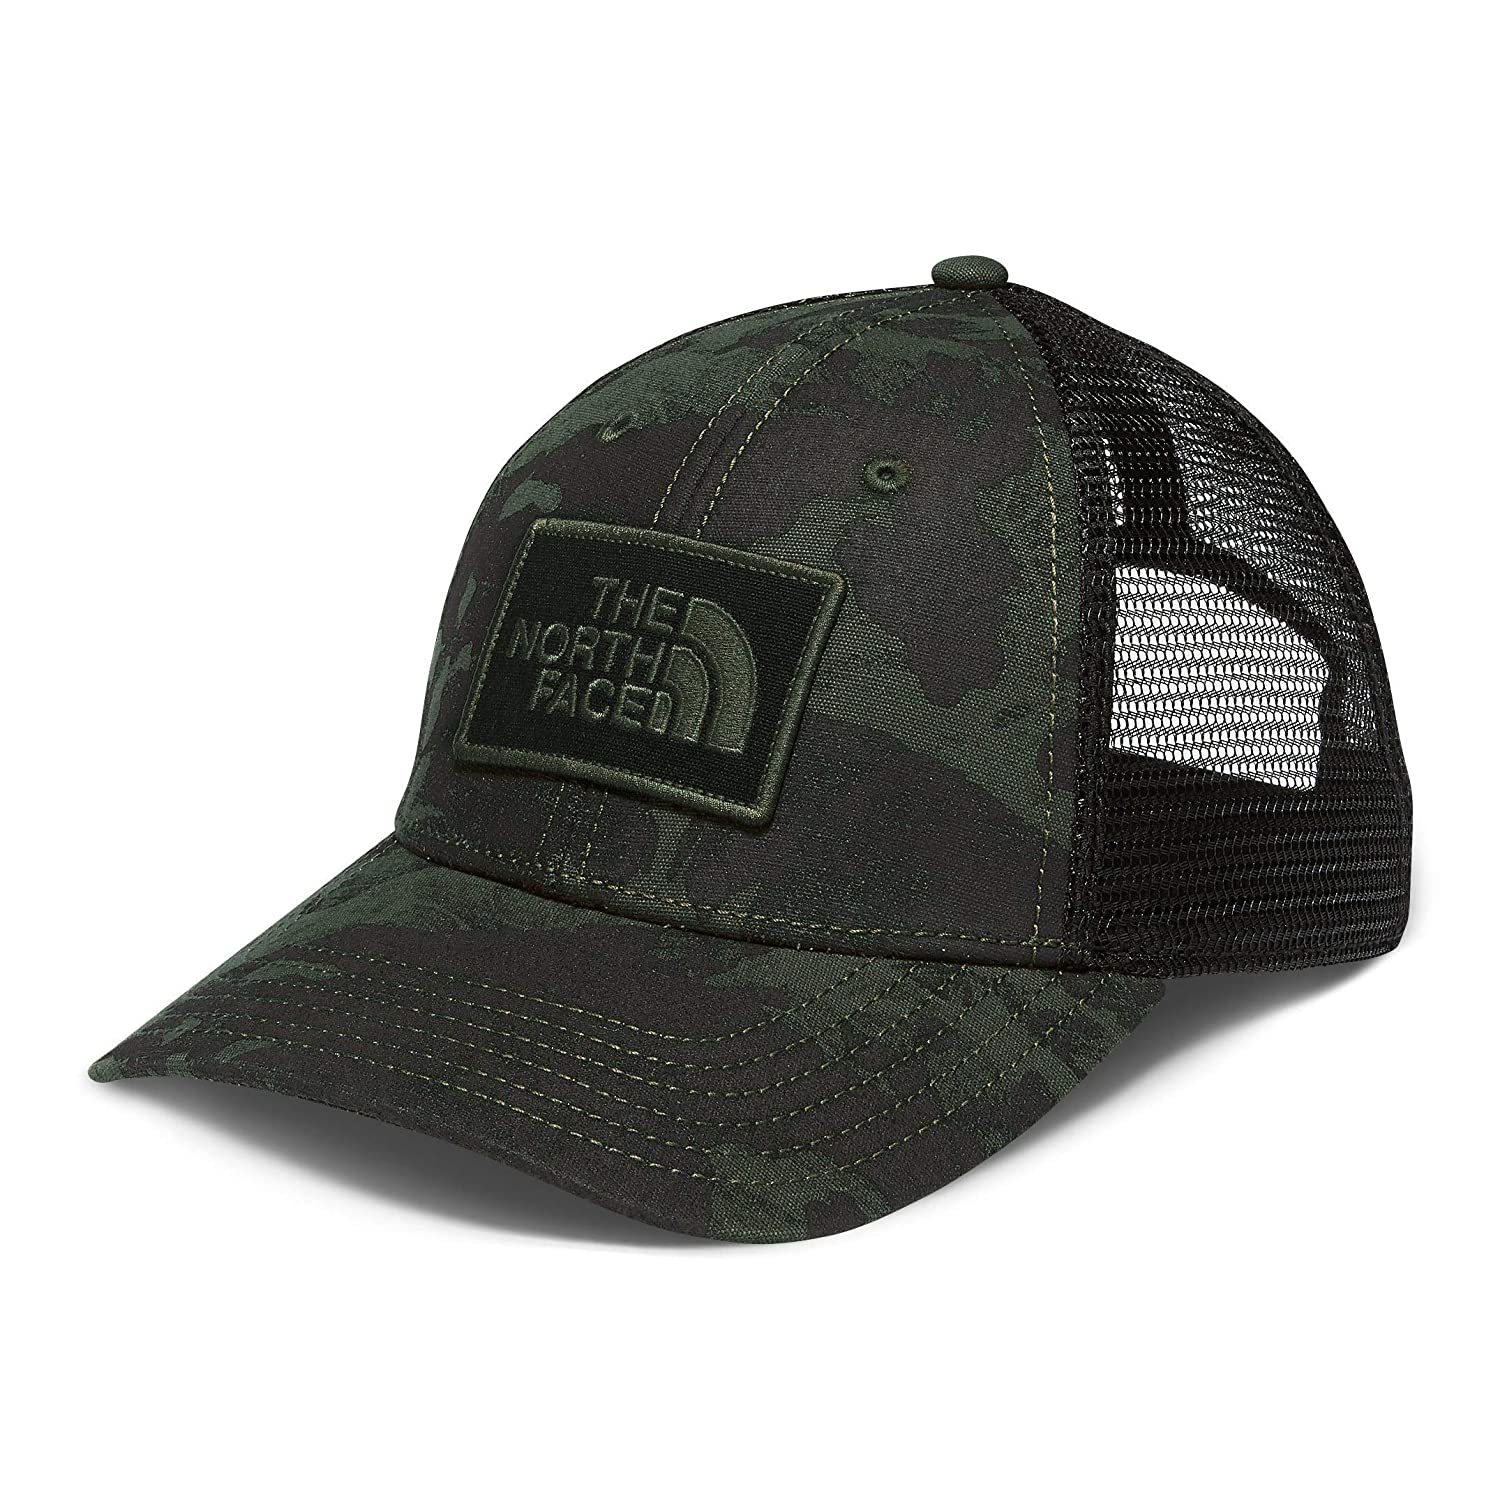 THE NORTH FACE Printed Mudder Trucker Hat New Taupe Green Tropical Camo  Print - OS  Amazon.ca  Clothing   Accessories 25beff58c1ea